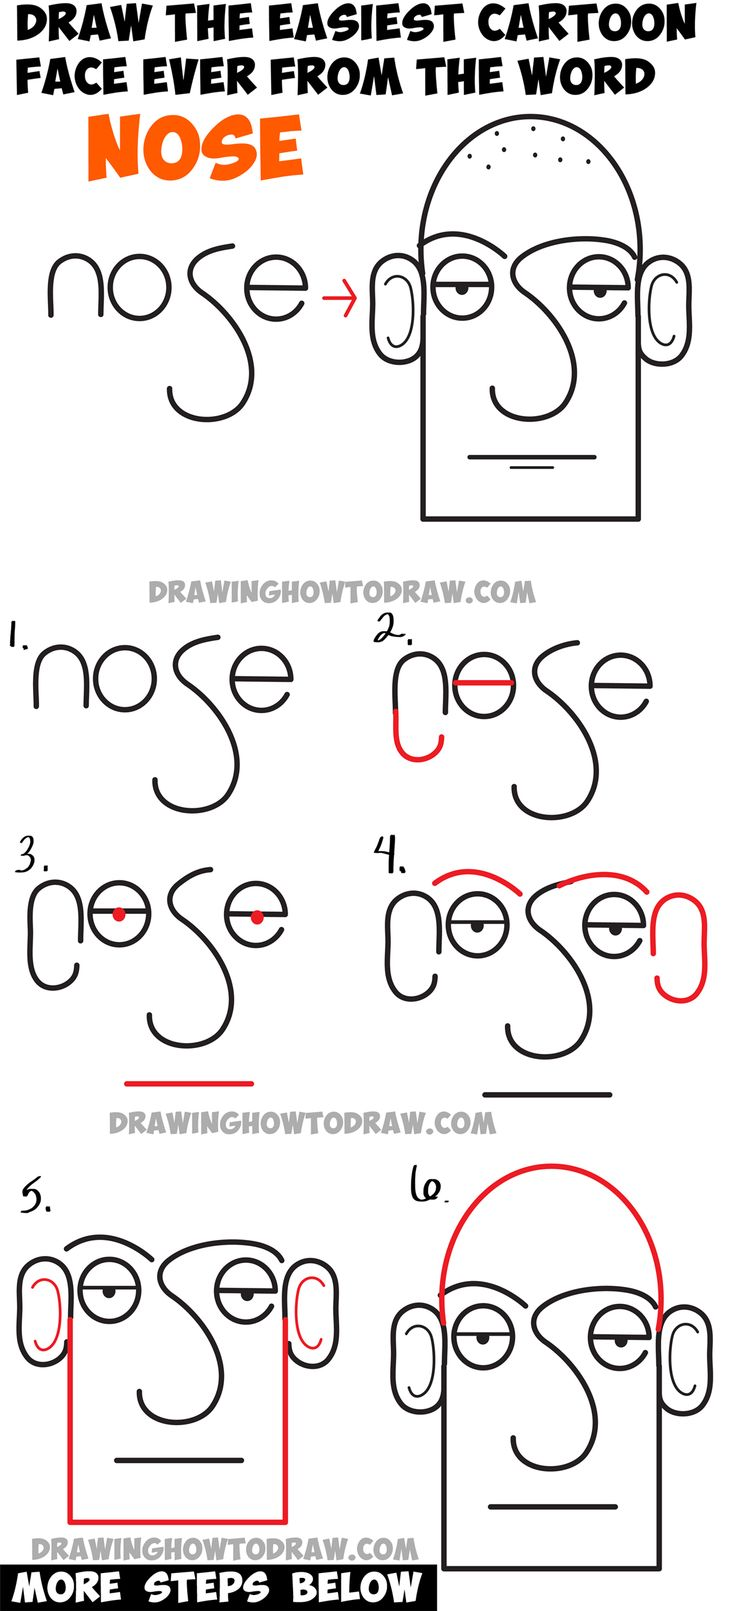 Learn How to Draw a Cartoon Face in Simplest Way : from the Word Face Step by Step Drawing Lesson